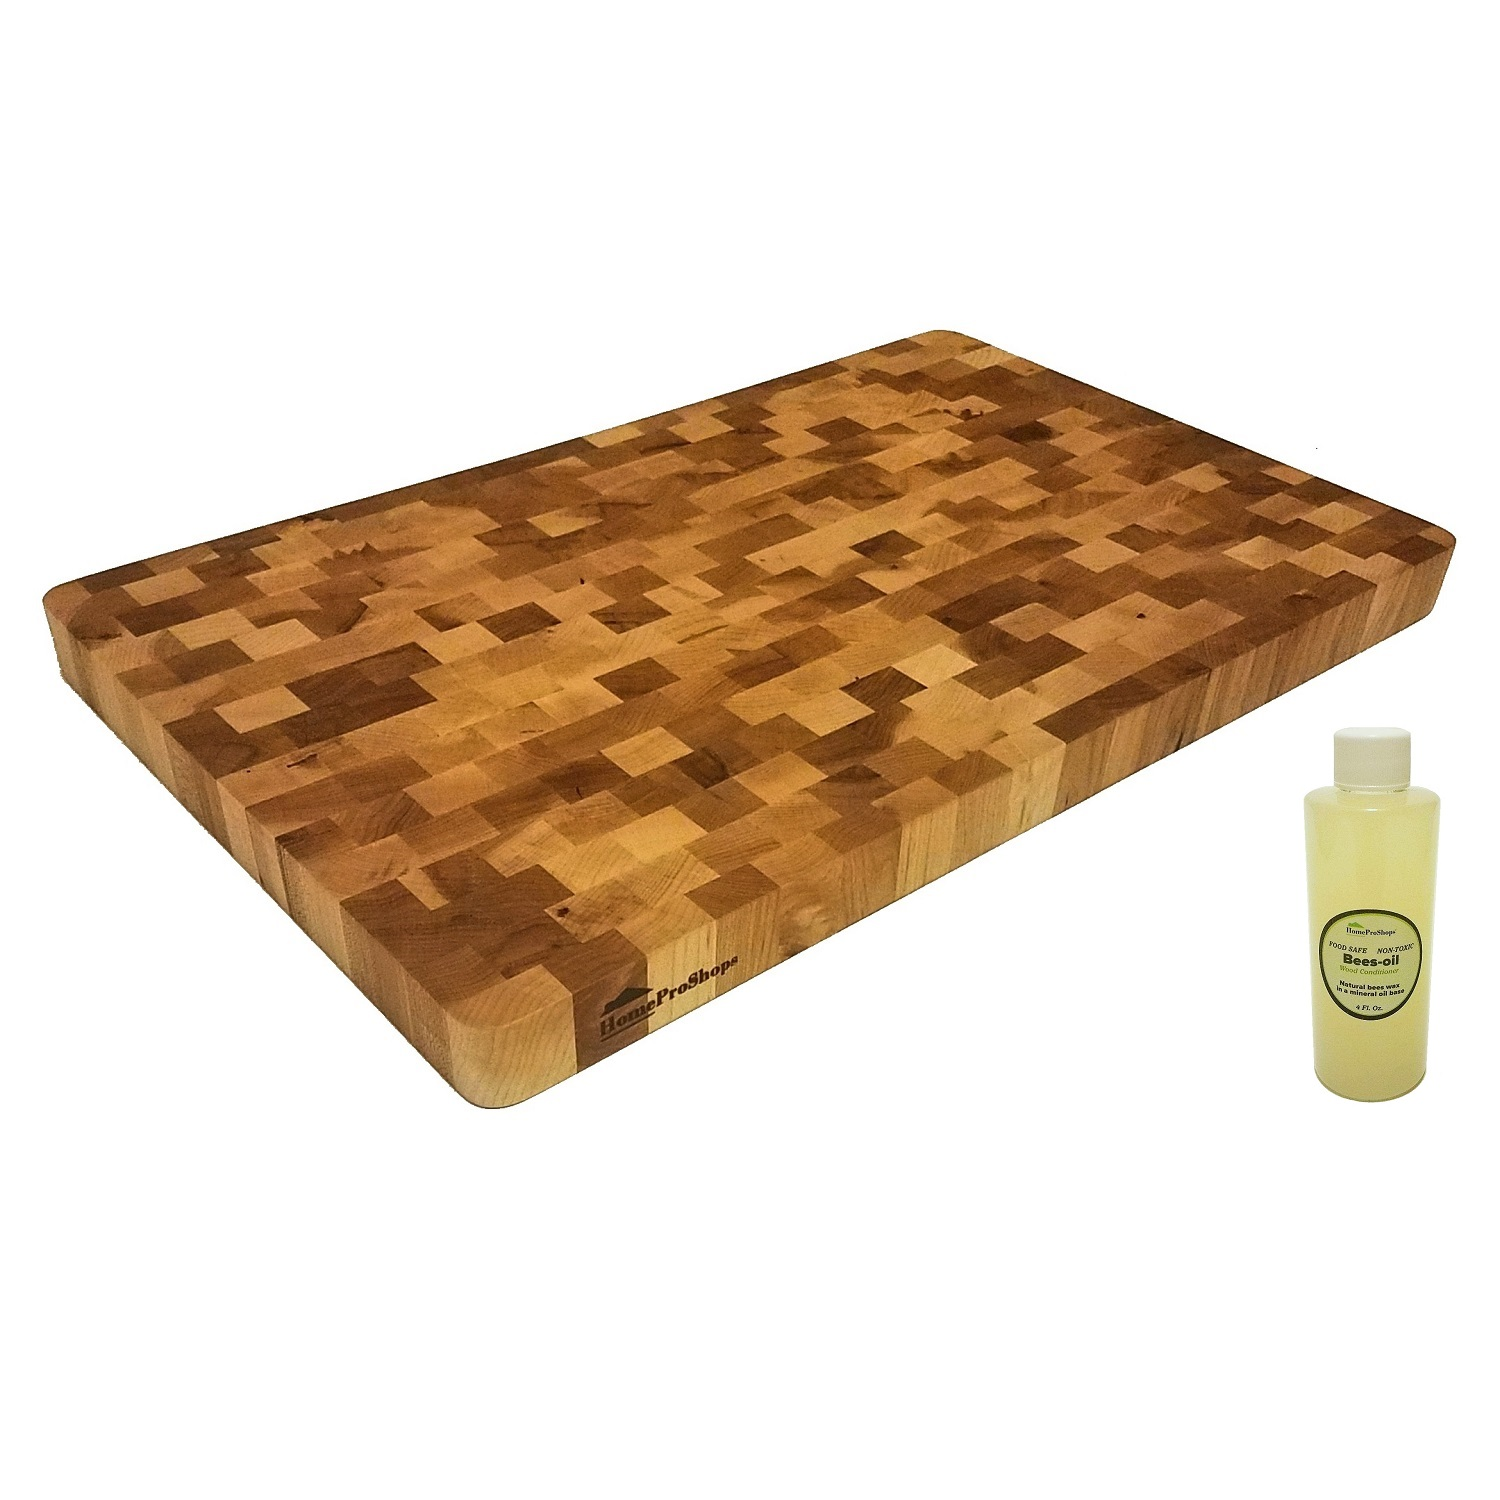 "HomeProShops 1-1/4""x12""x19"" Reversible Solid Natural Hard Maple END-GRAIN Wood Butcher Block Cutting Board with ""FREE"" Mineral Oil included"